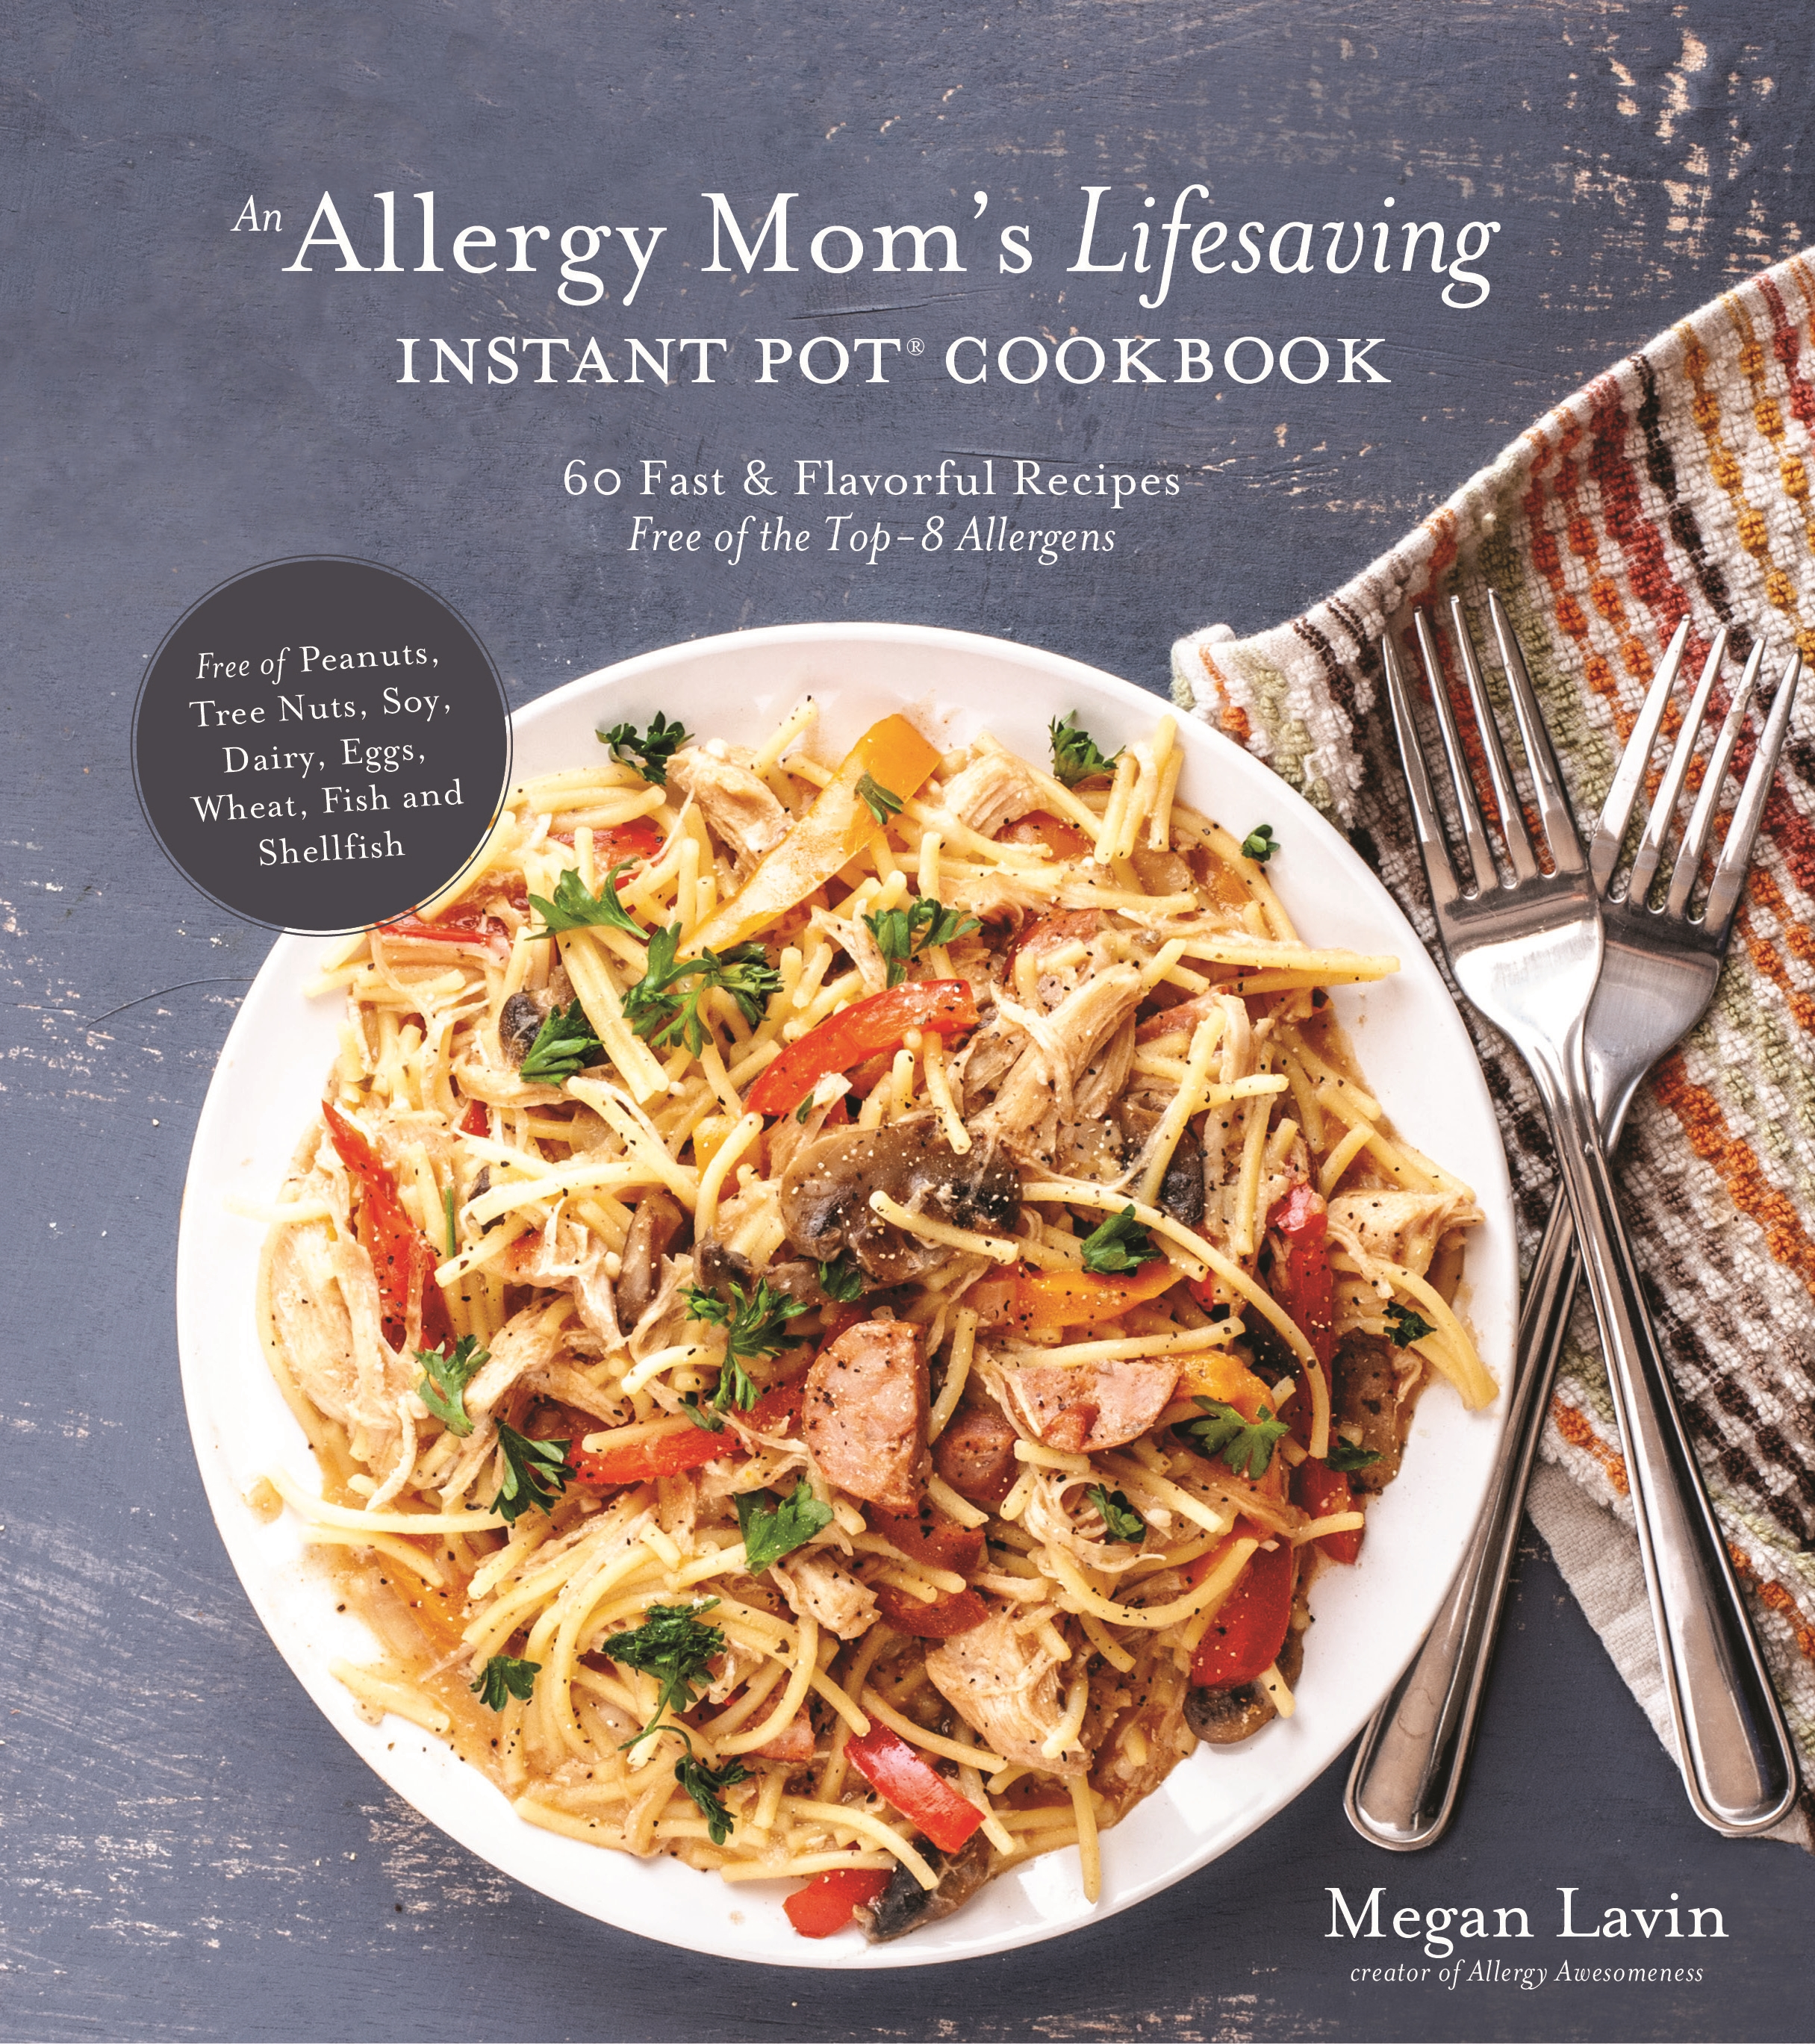 An Allergy Mom's Lifesaving Instant Pot Cookbook 60 Fast and Flavorful Recipes Free of the Top 8 Allergens